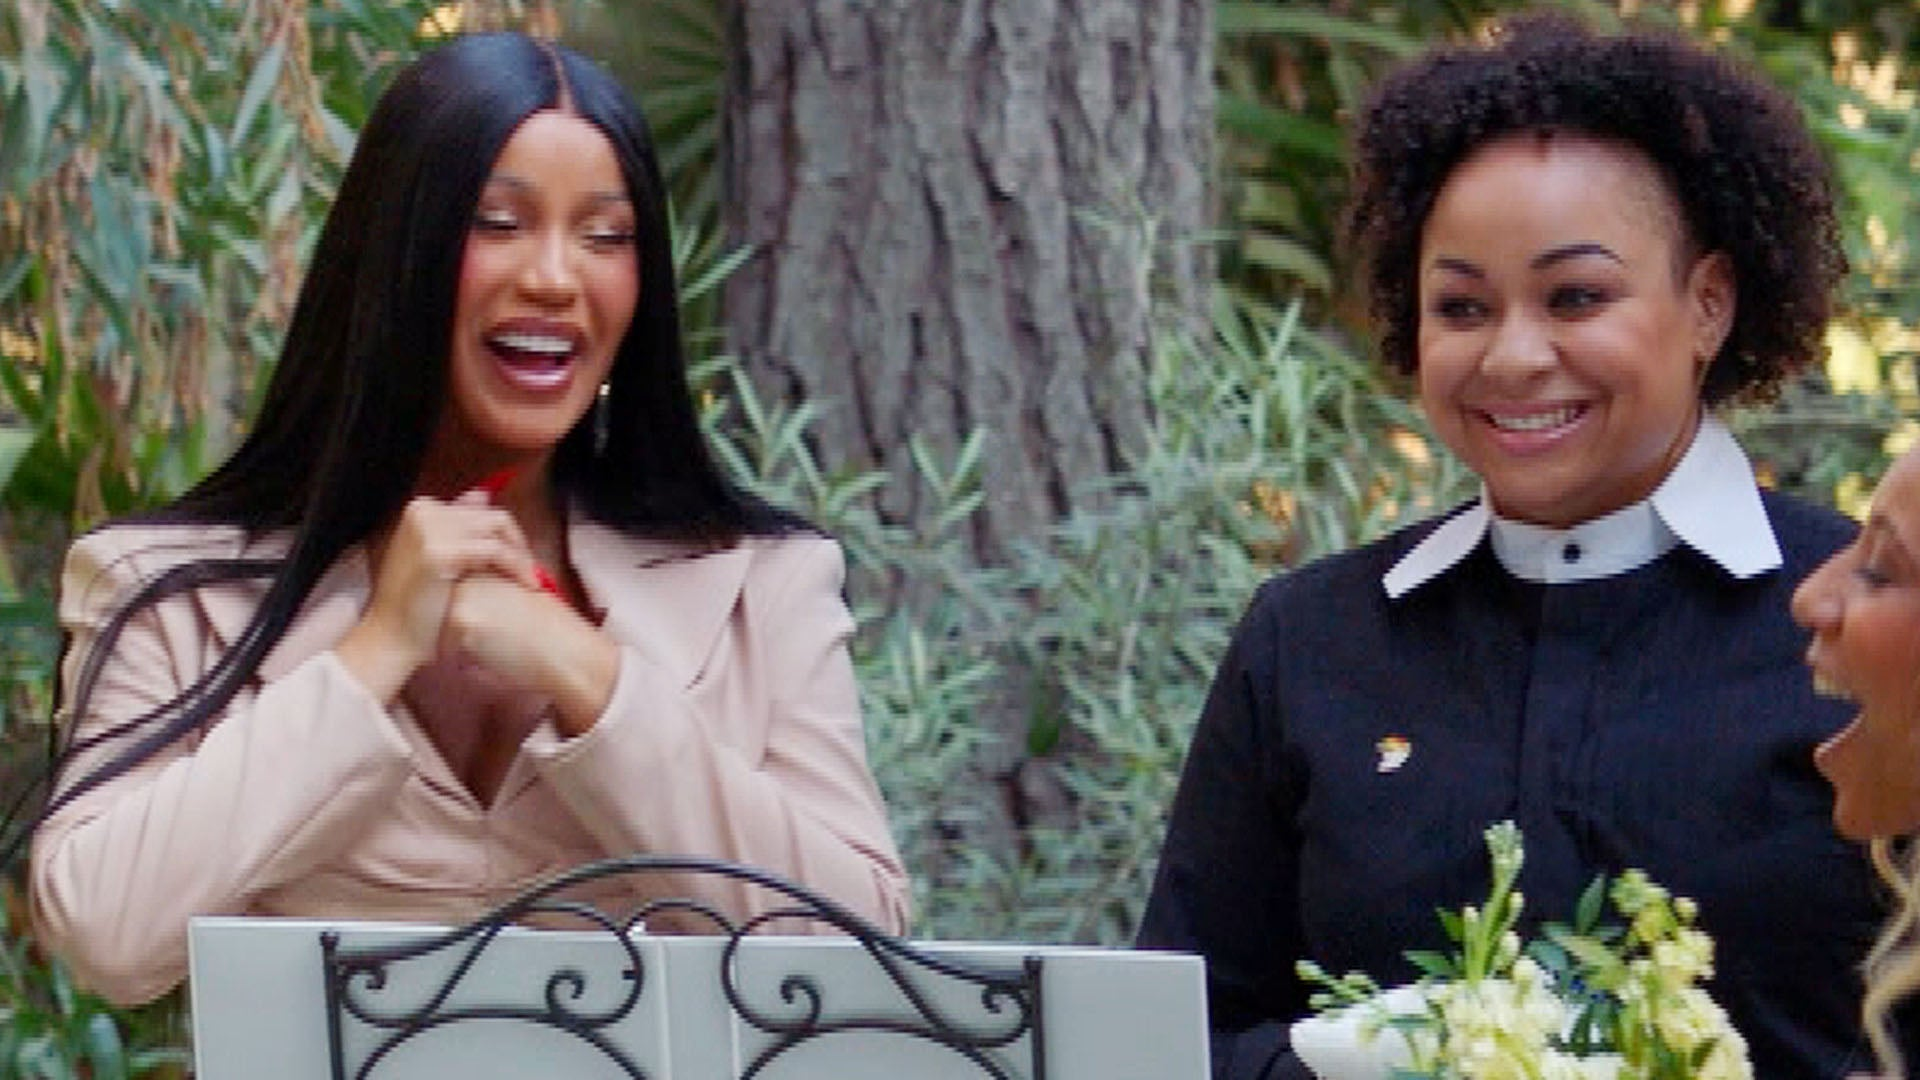 Introducing The Honorable Cardi B, As She Officiates Her First Wedding [VIDEO]